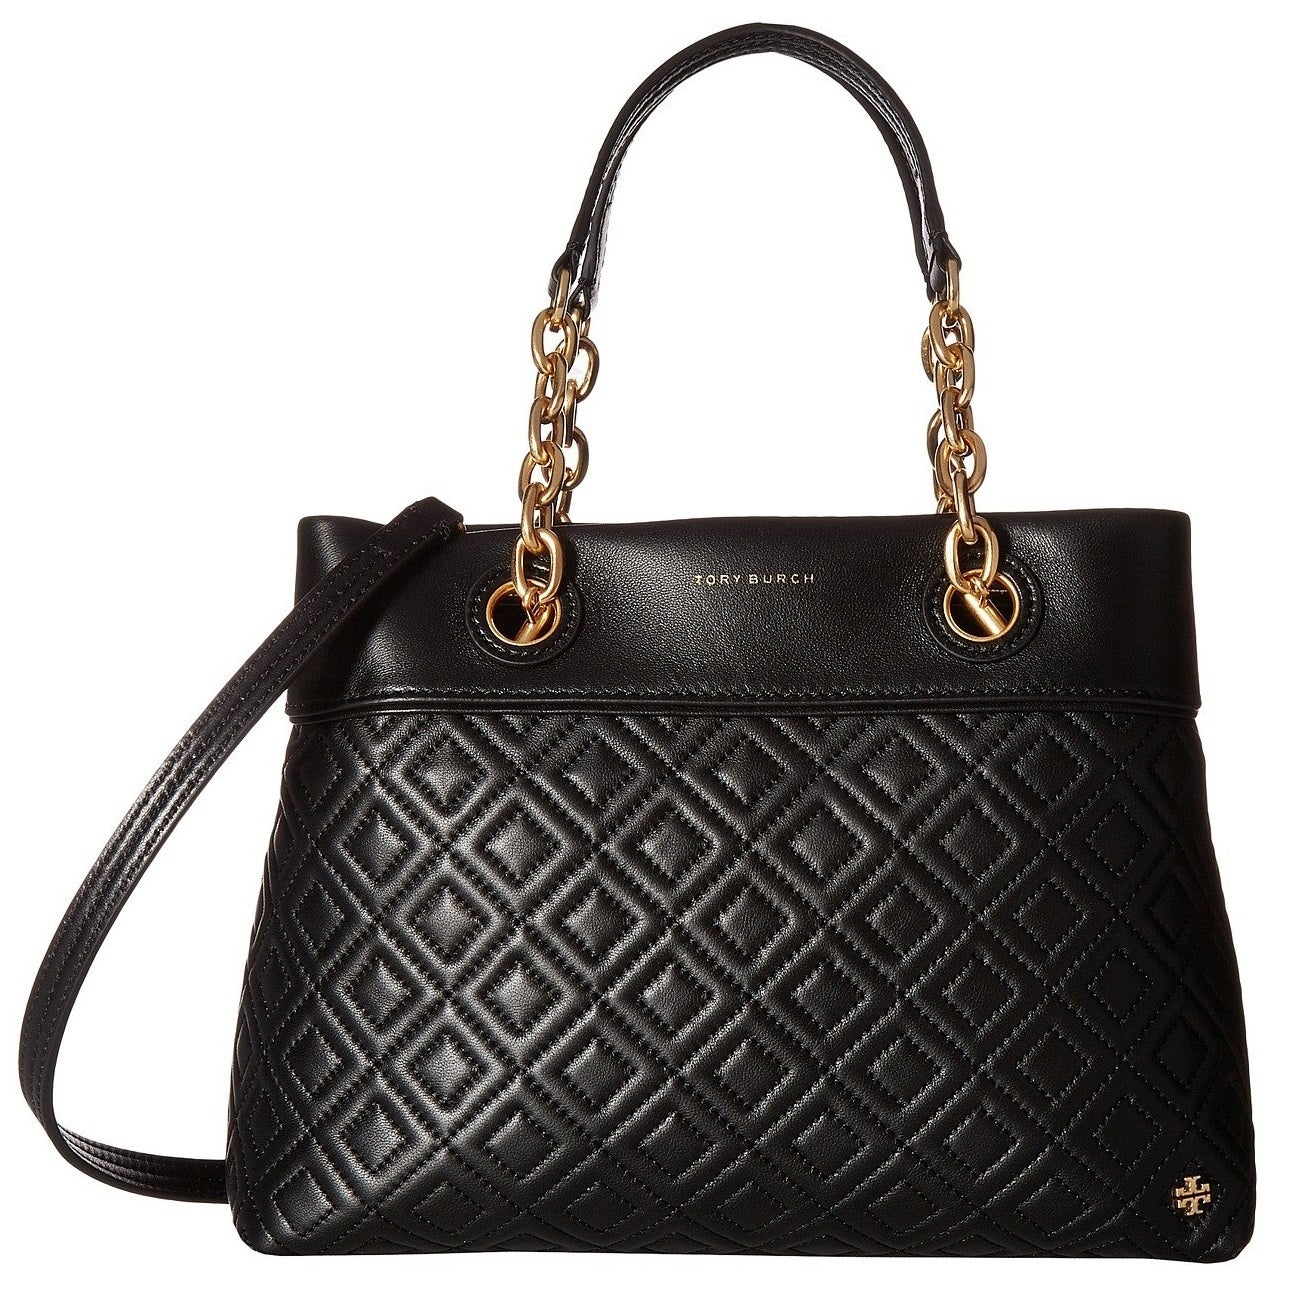 Designer Handbags Find Great Deals Ping At Com